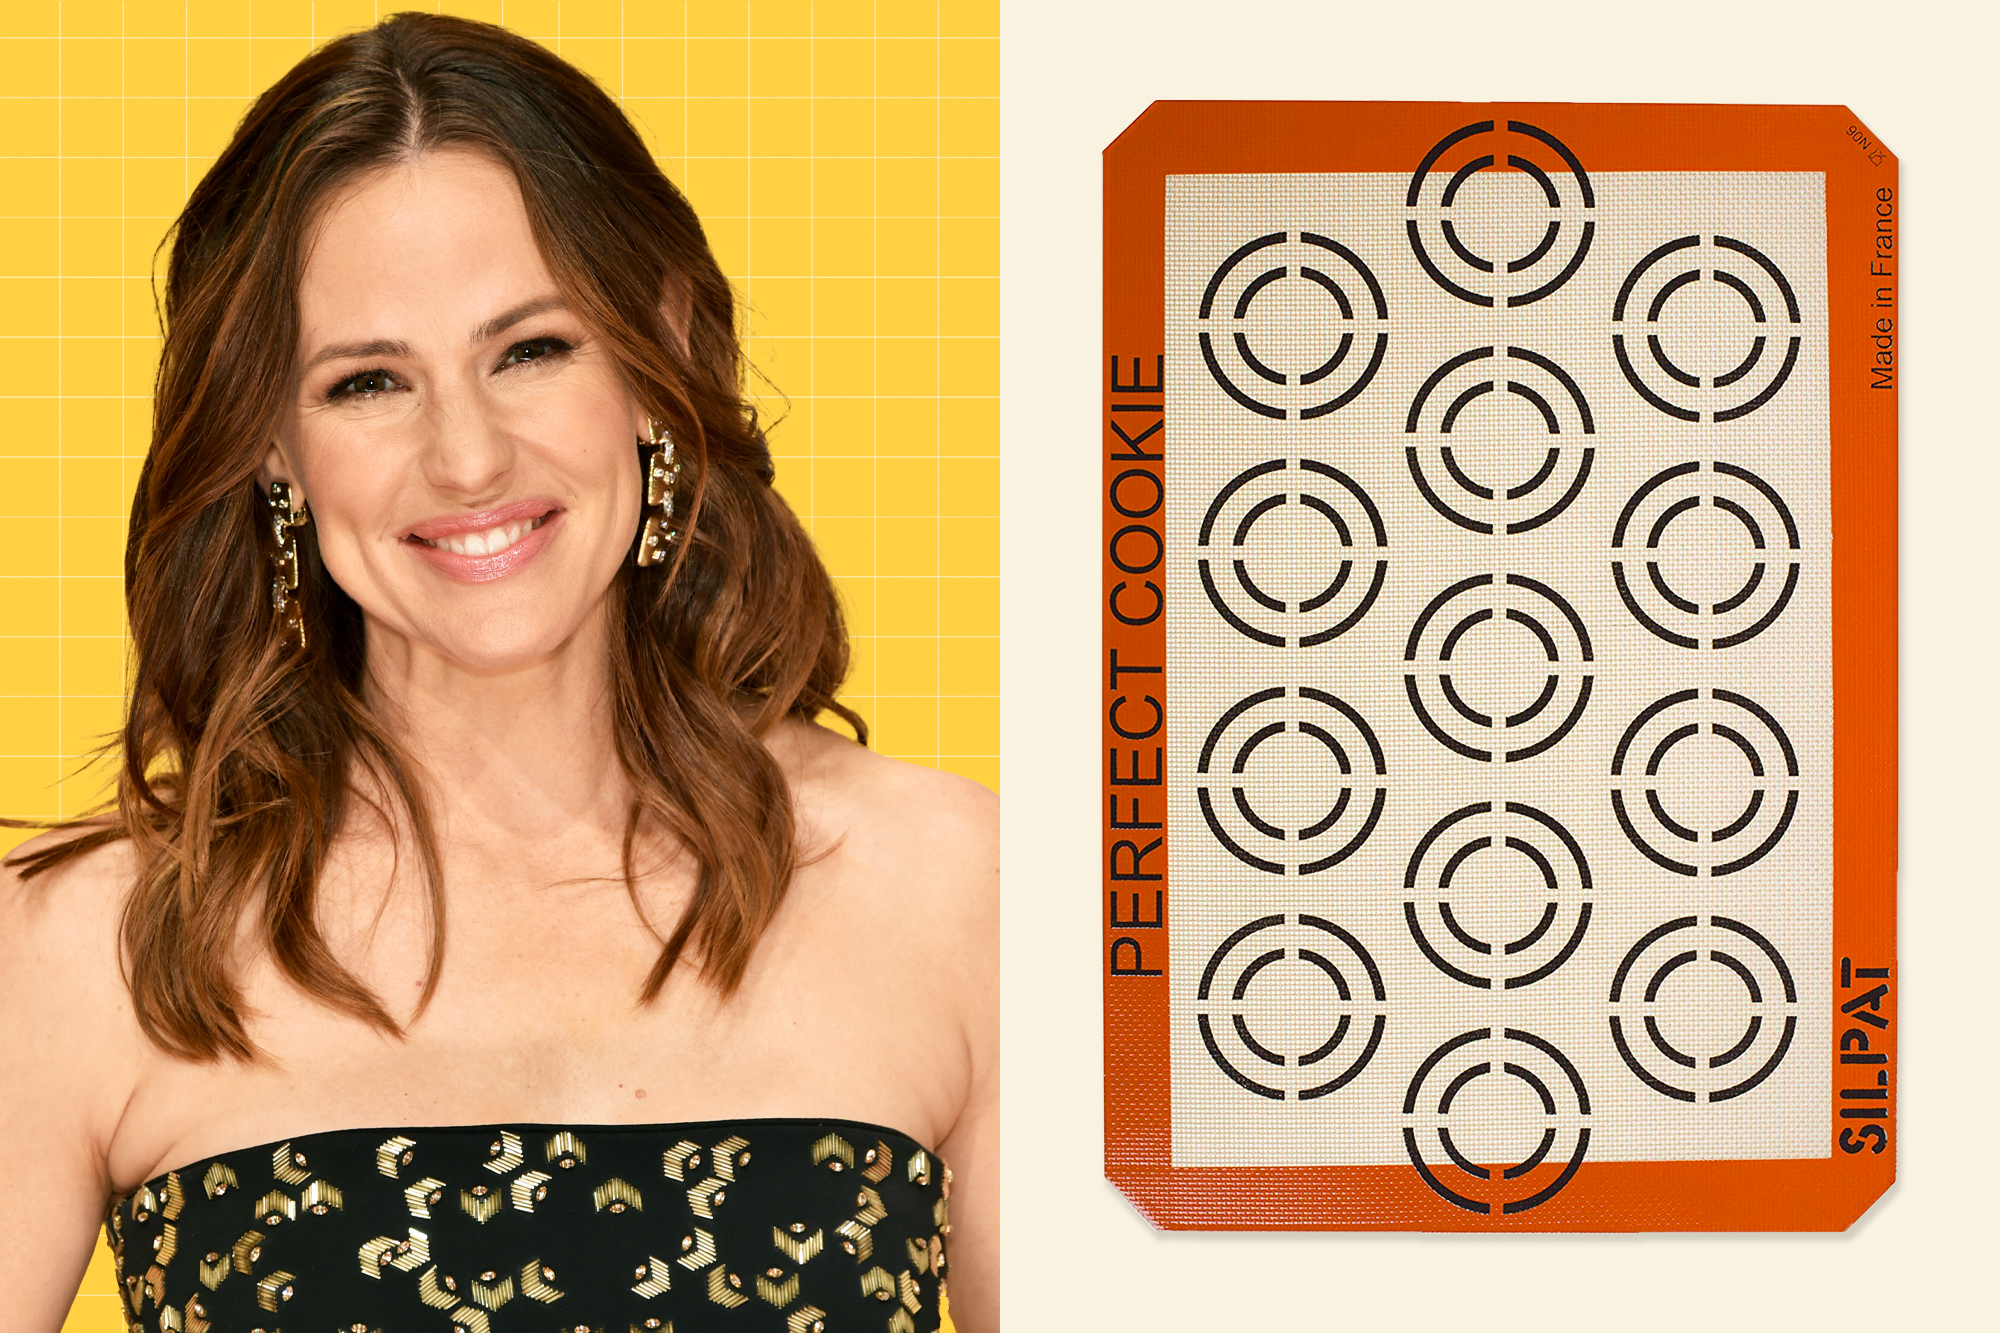 A protrait of Jennifer Garner next to Silpat Perfect Cookie Non-Stick Silicone Baking Mat